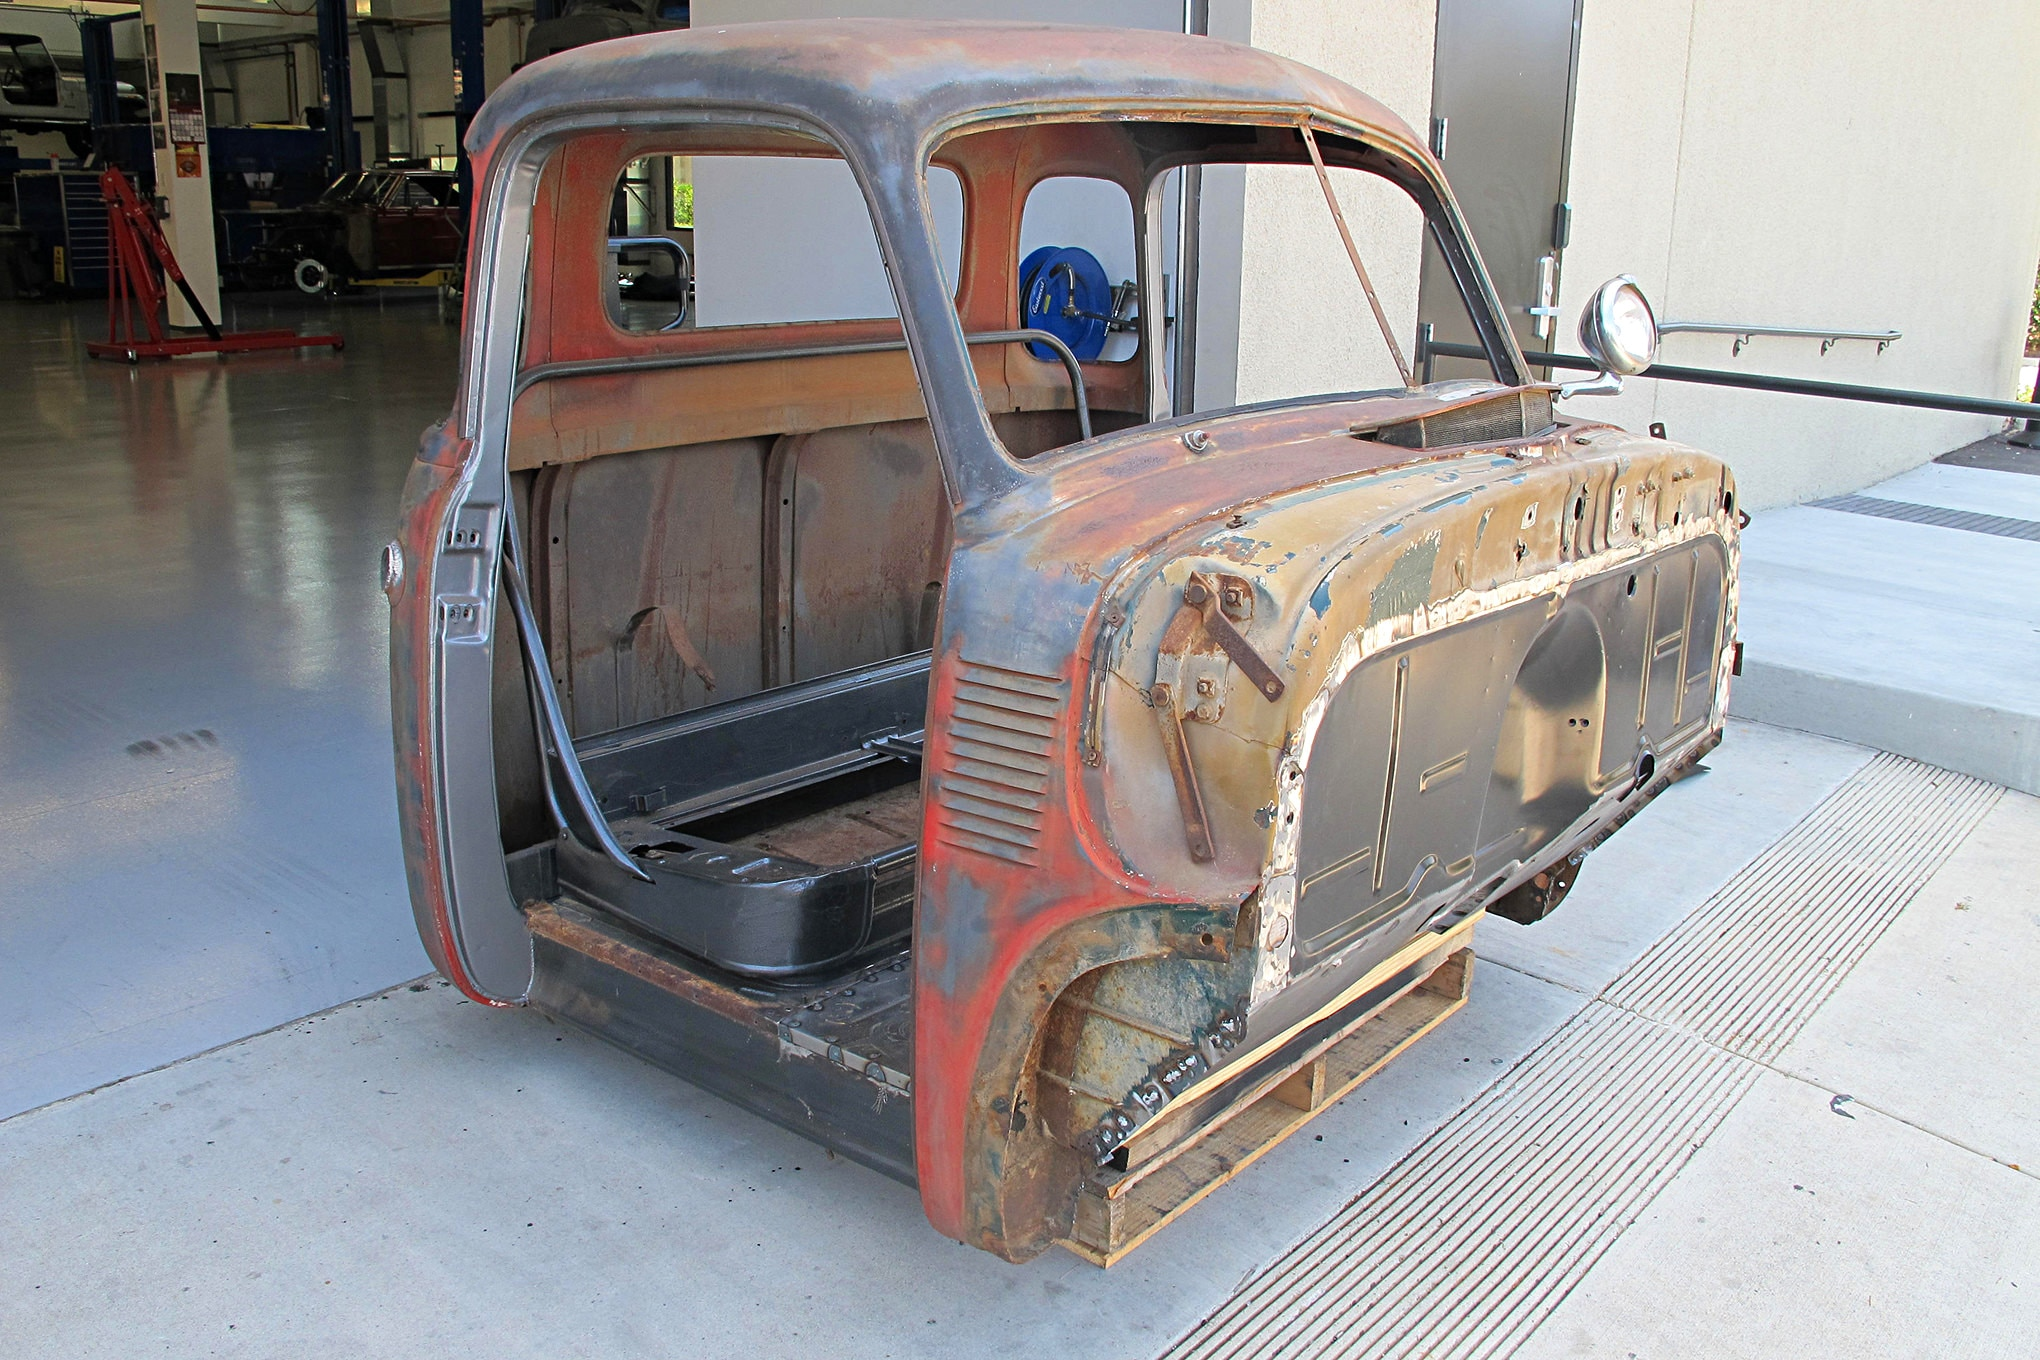 Buck Lyons' 1949 Chevy cab had some rusty sheetmetal replaced with panels from Classic Parts of America. The next task was to protect the rest of it from the elements.